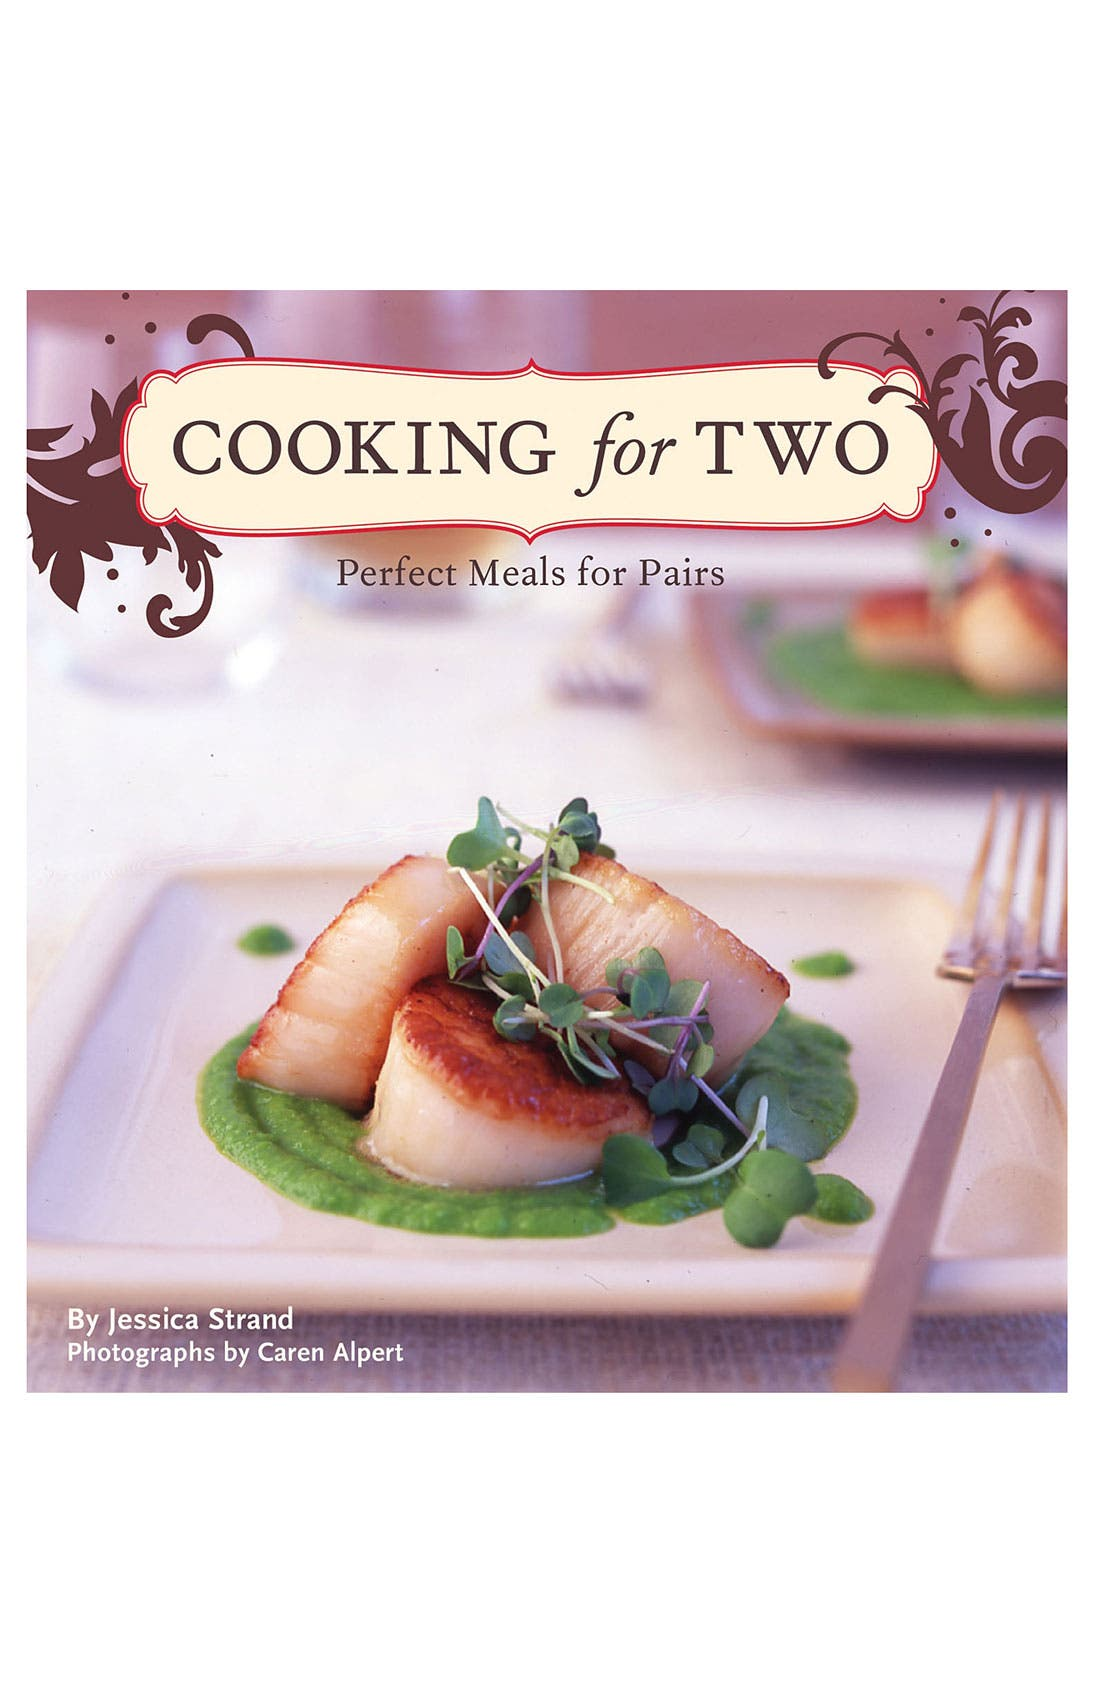 Alternate Image 1 Selected - Jessica Strand 'Cooking for Two' Cookbook